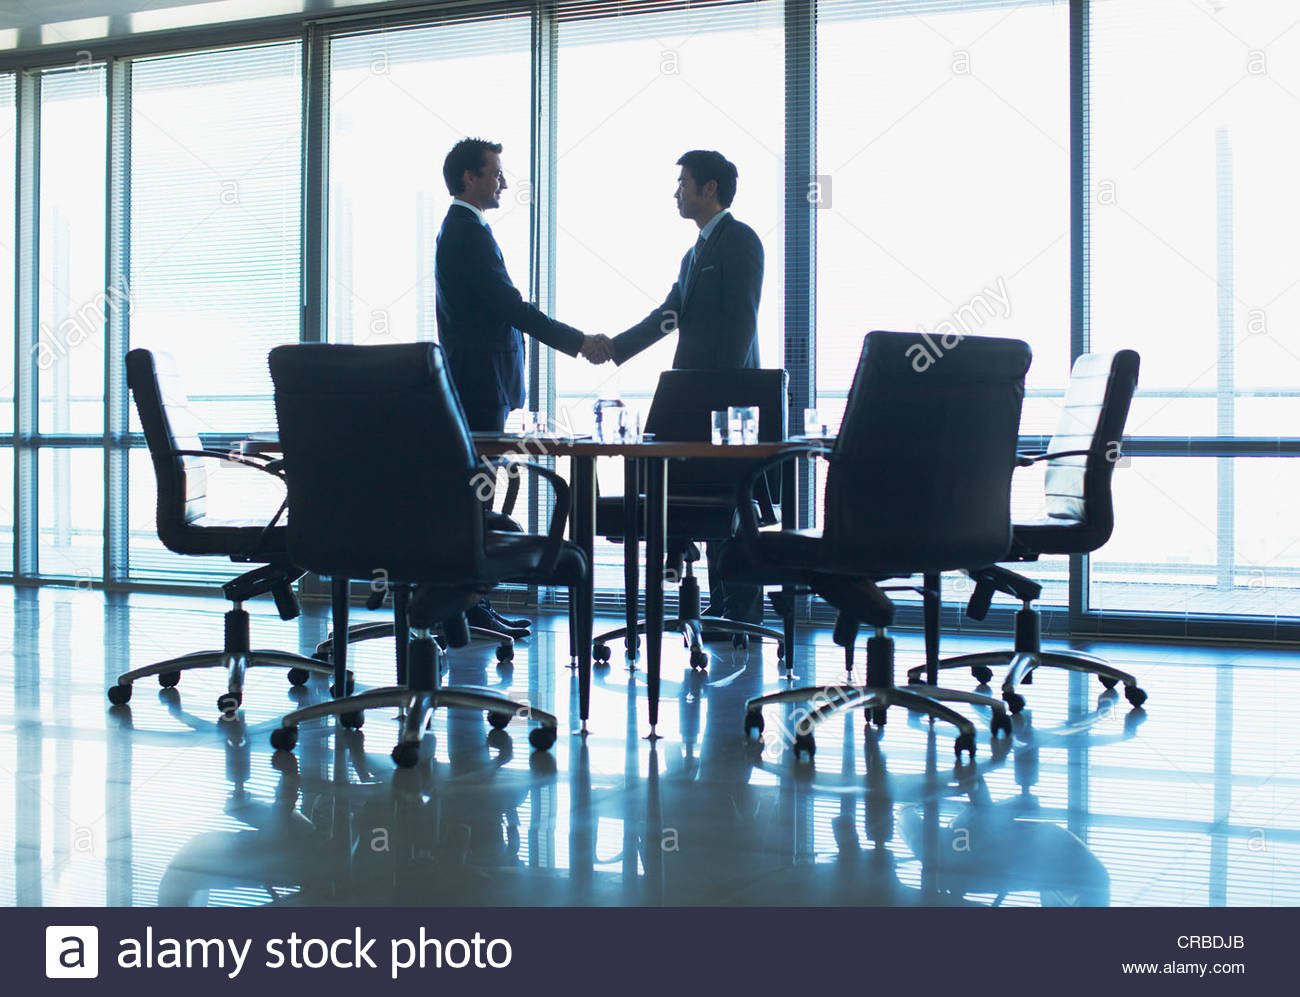 Silhouette of businessmen shaking hands in conference room - Stock Image